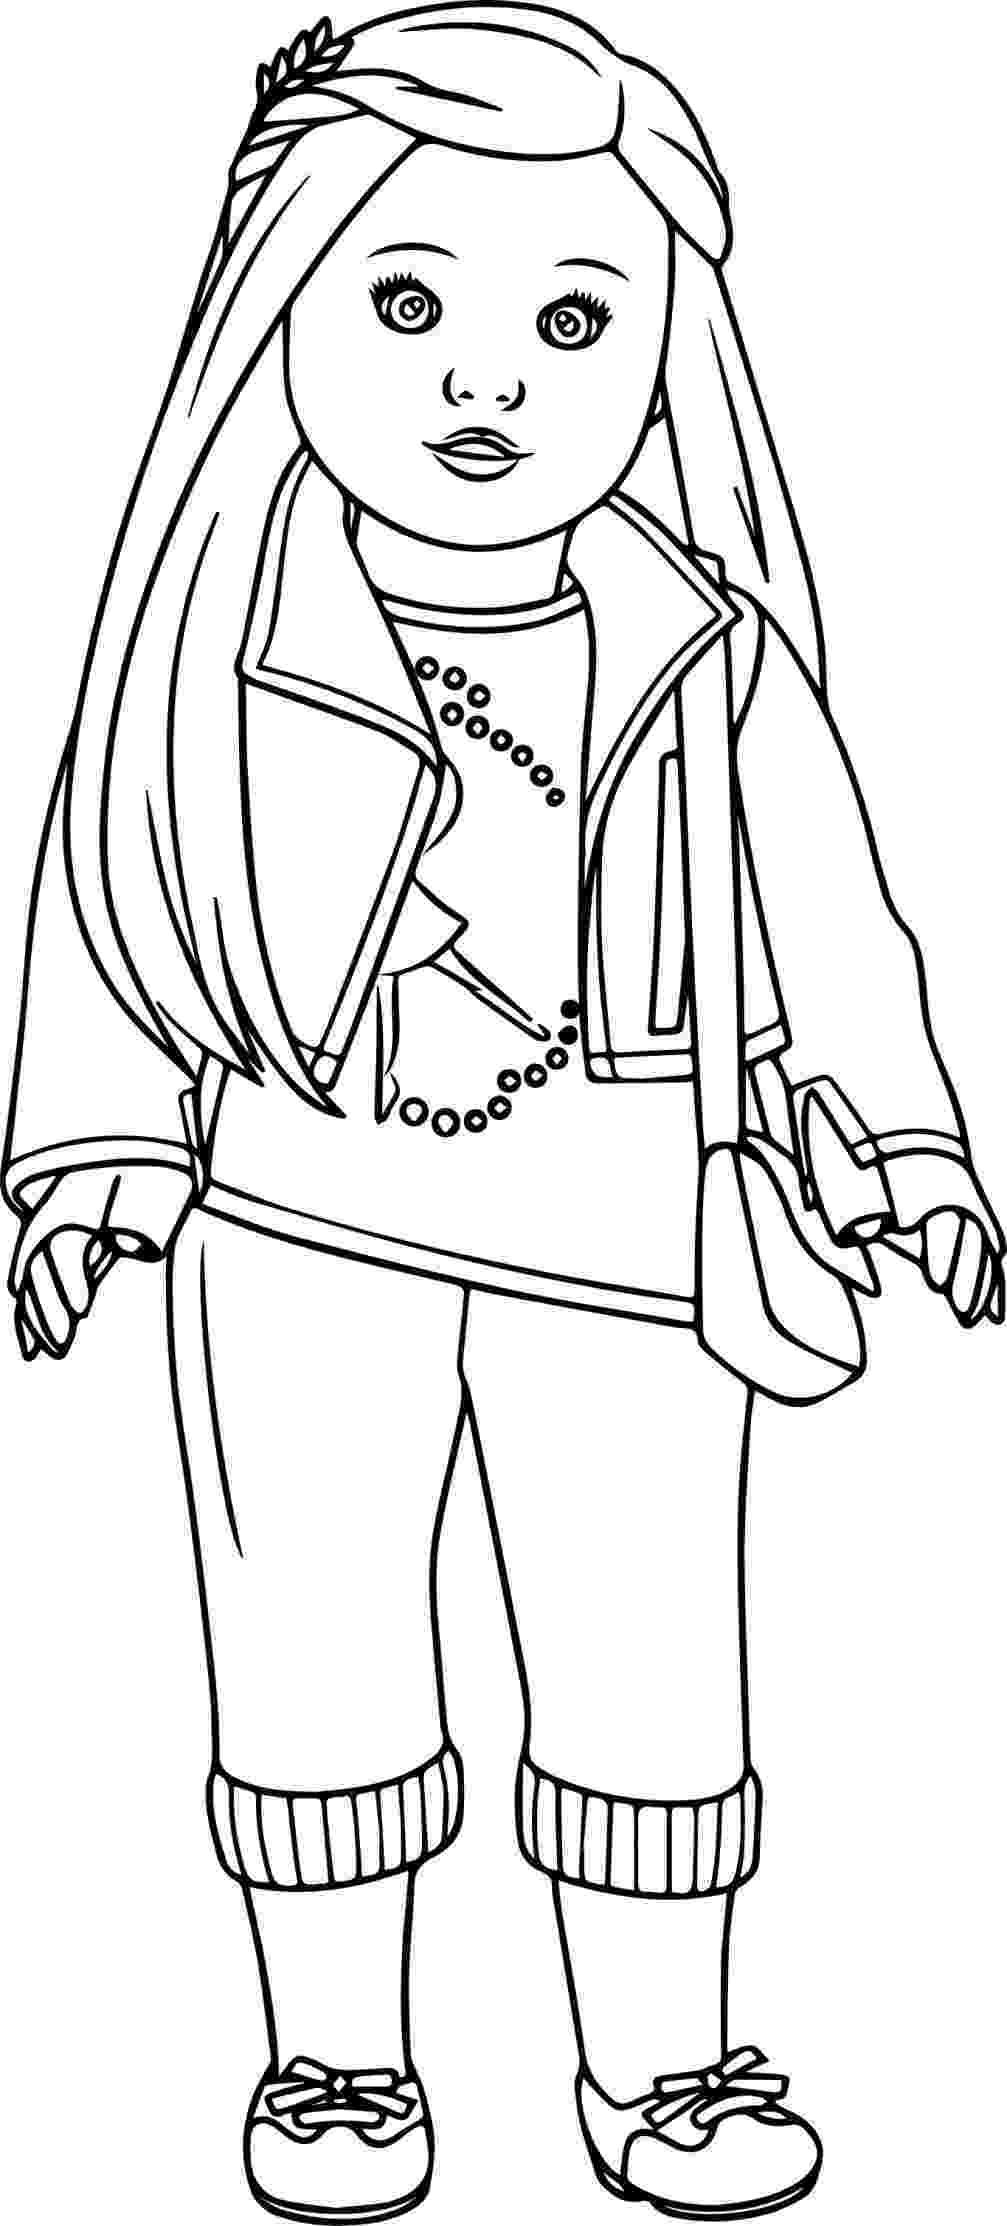 american girl coloring pages printable american girl coloring pages best coloring pages for kids girl pages printable coloring american